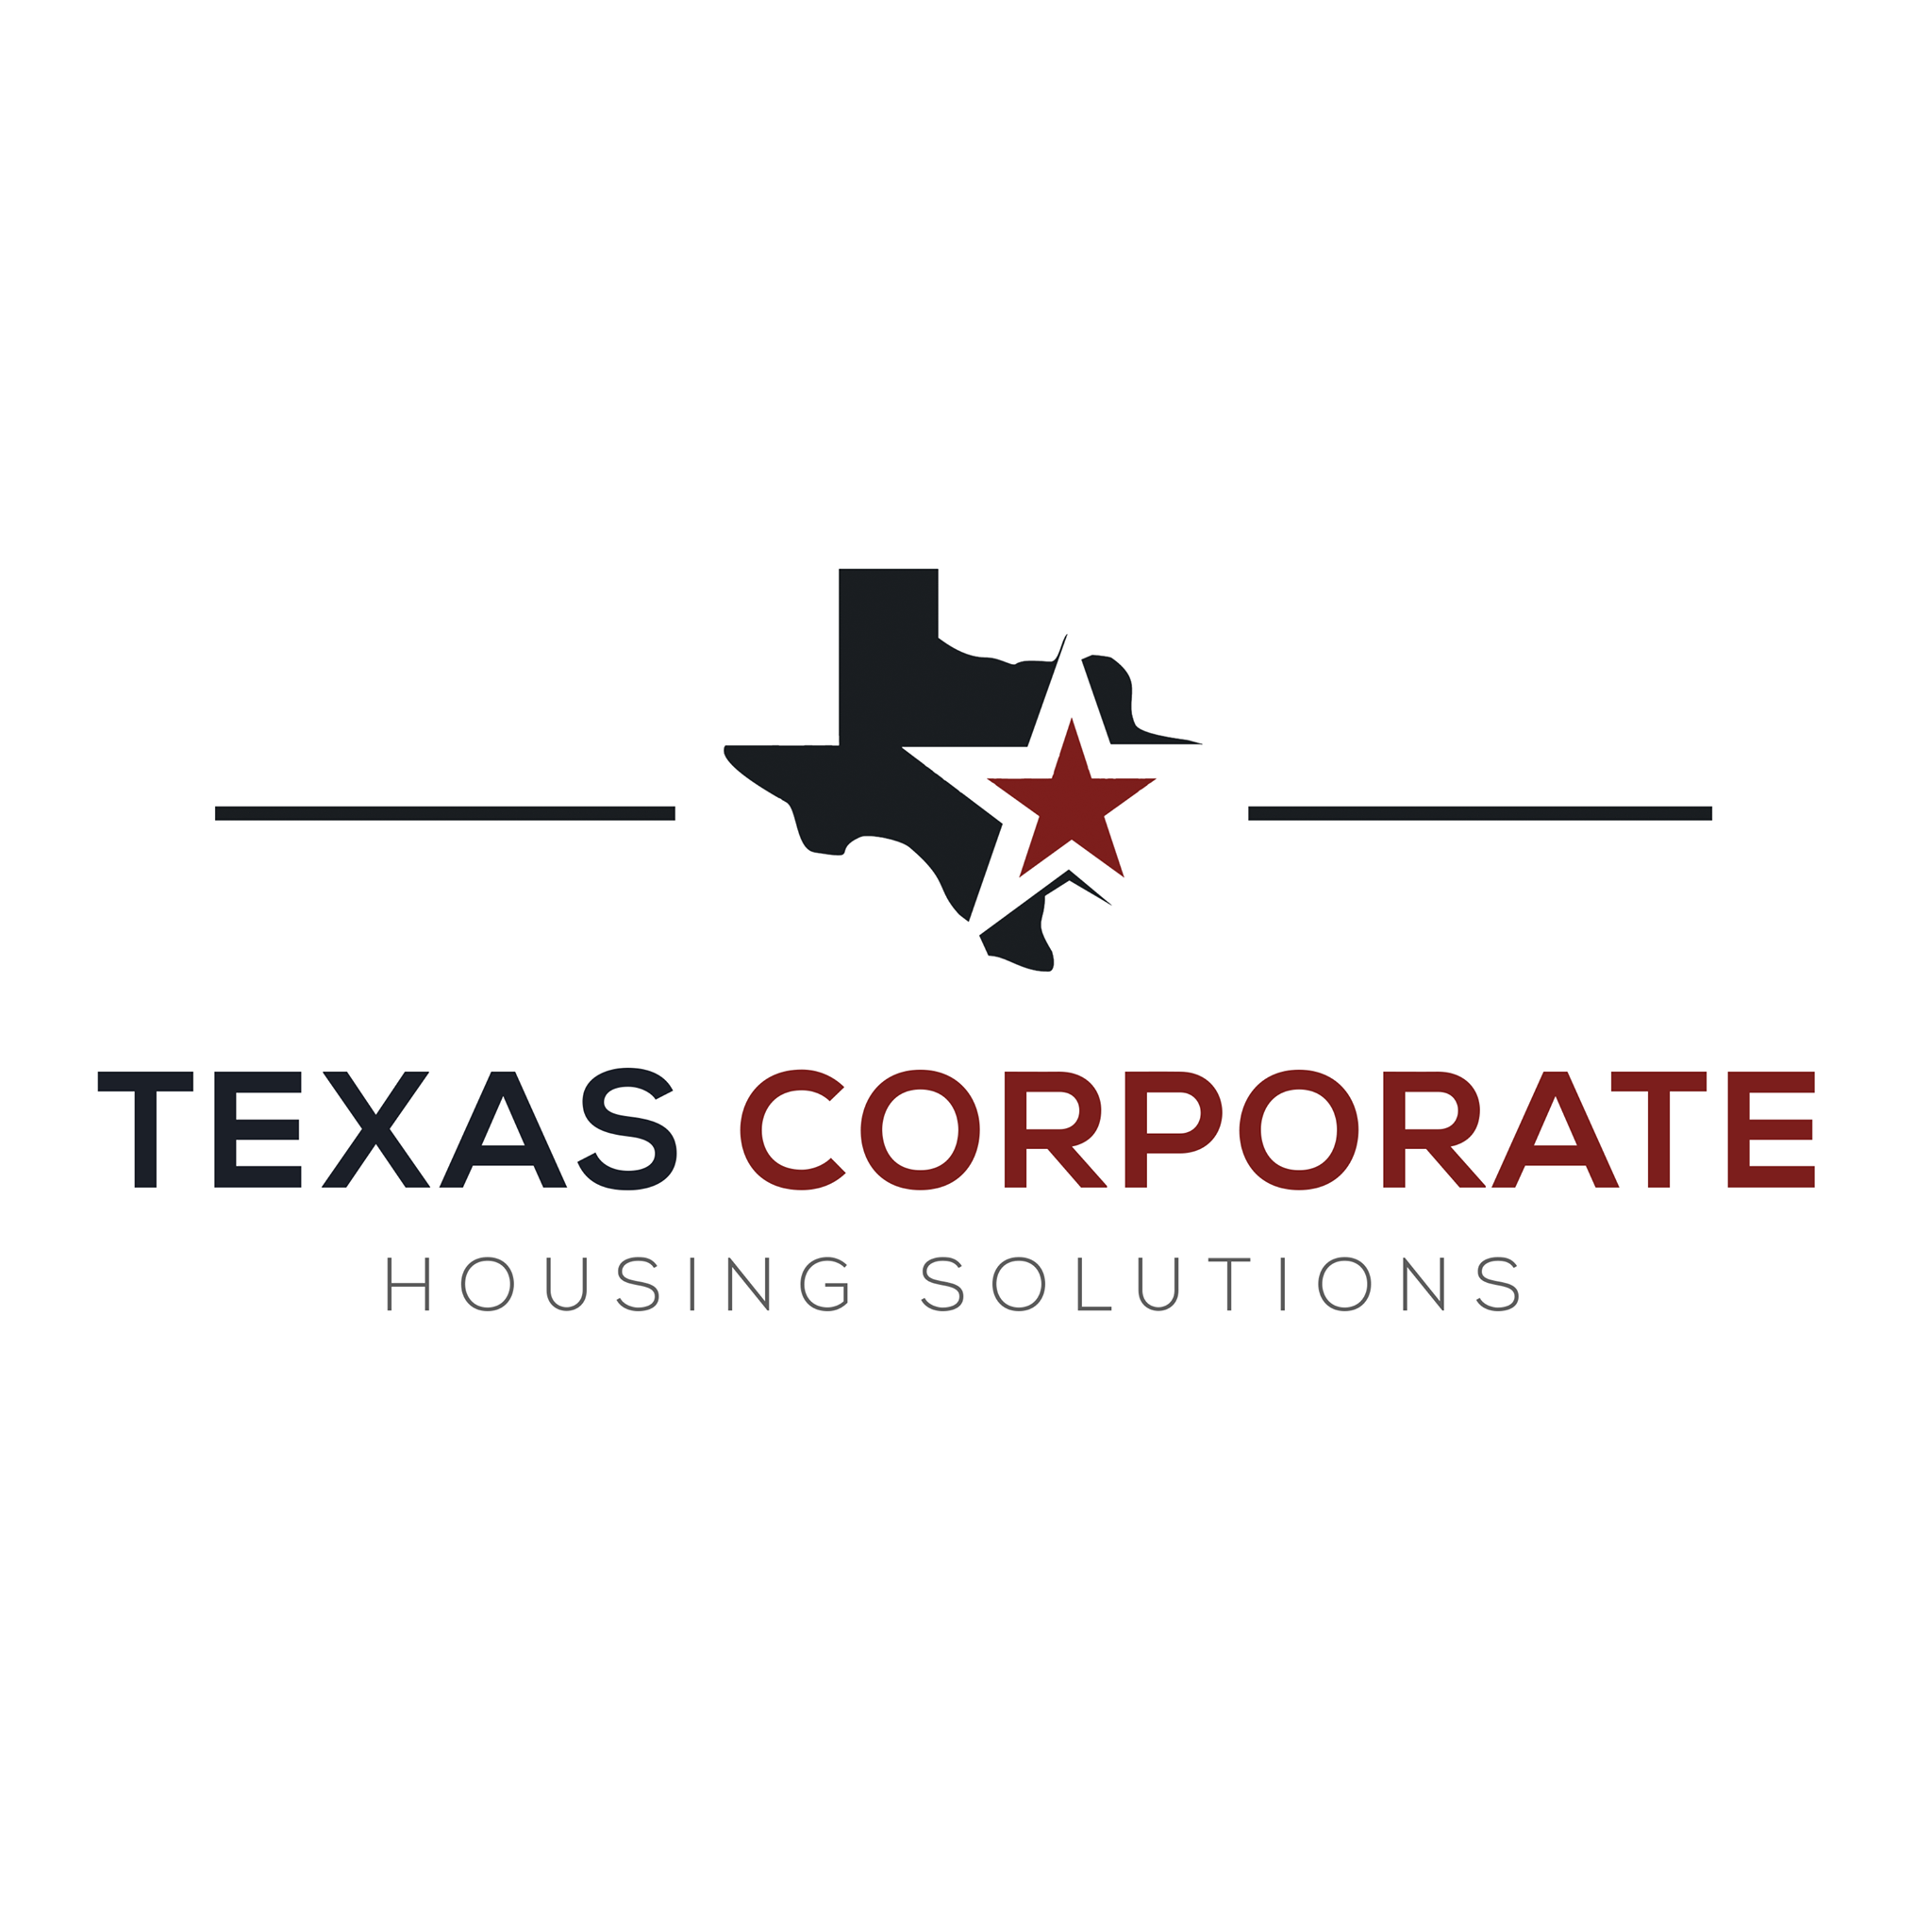 Company logo of Texas Corporate Housing Solutions